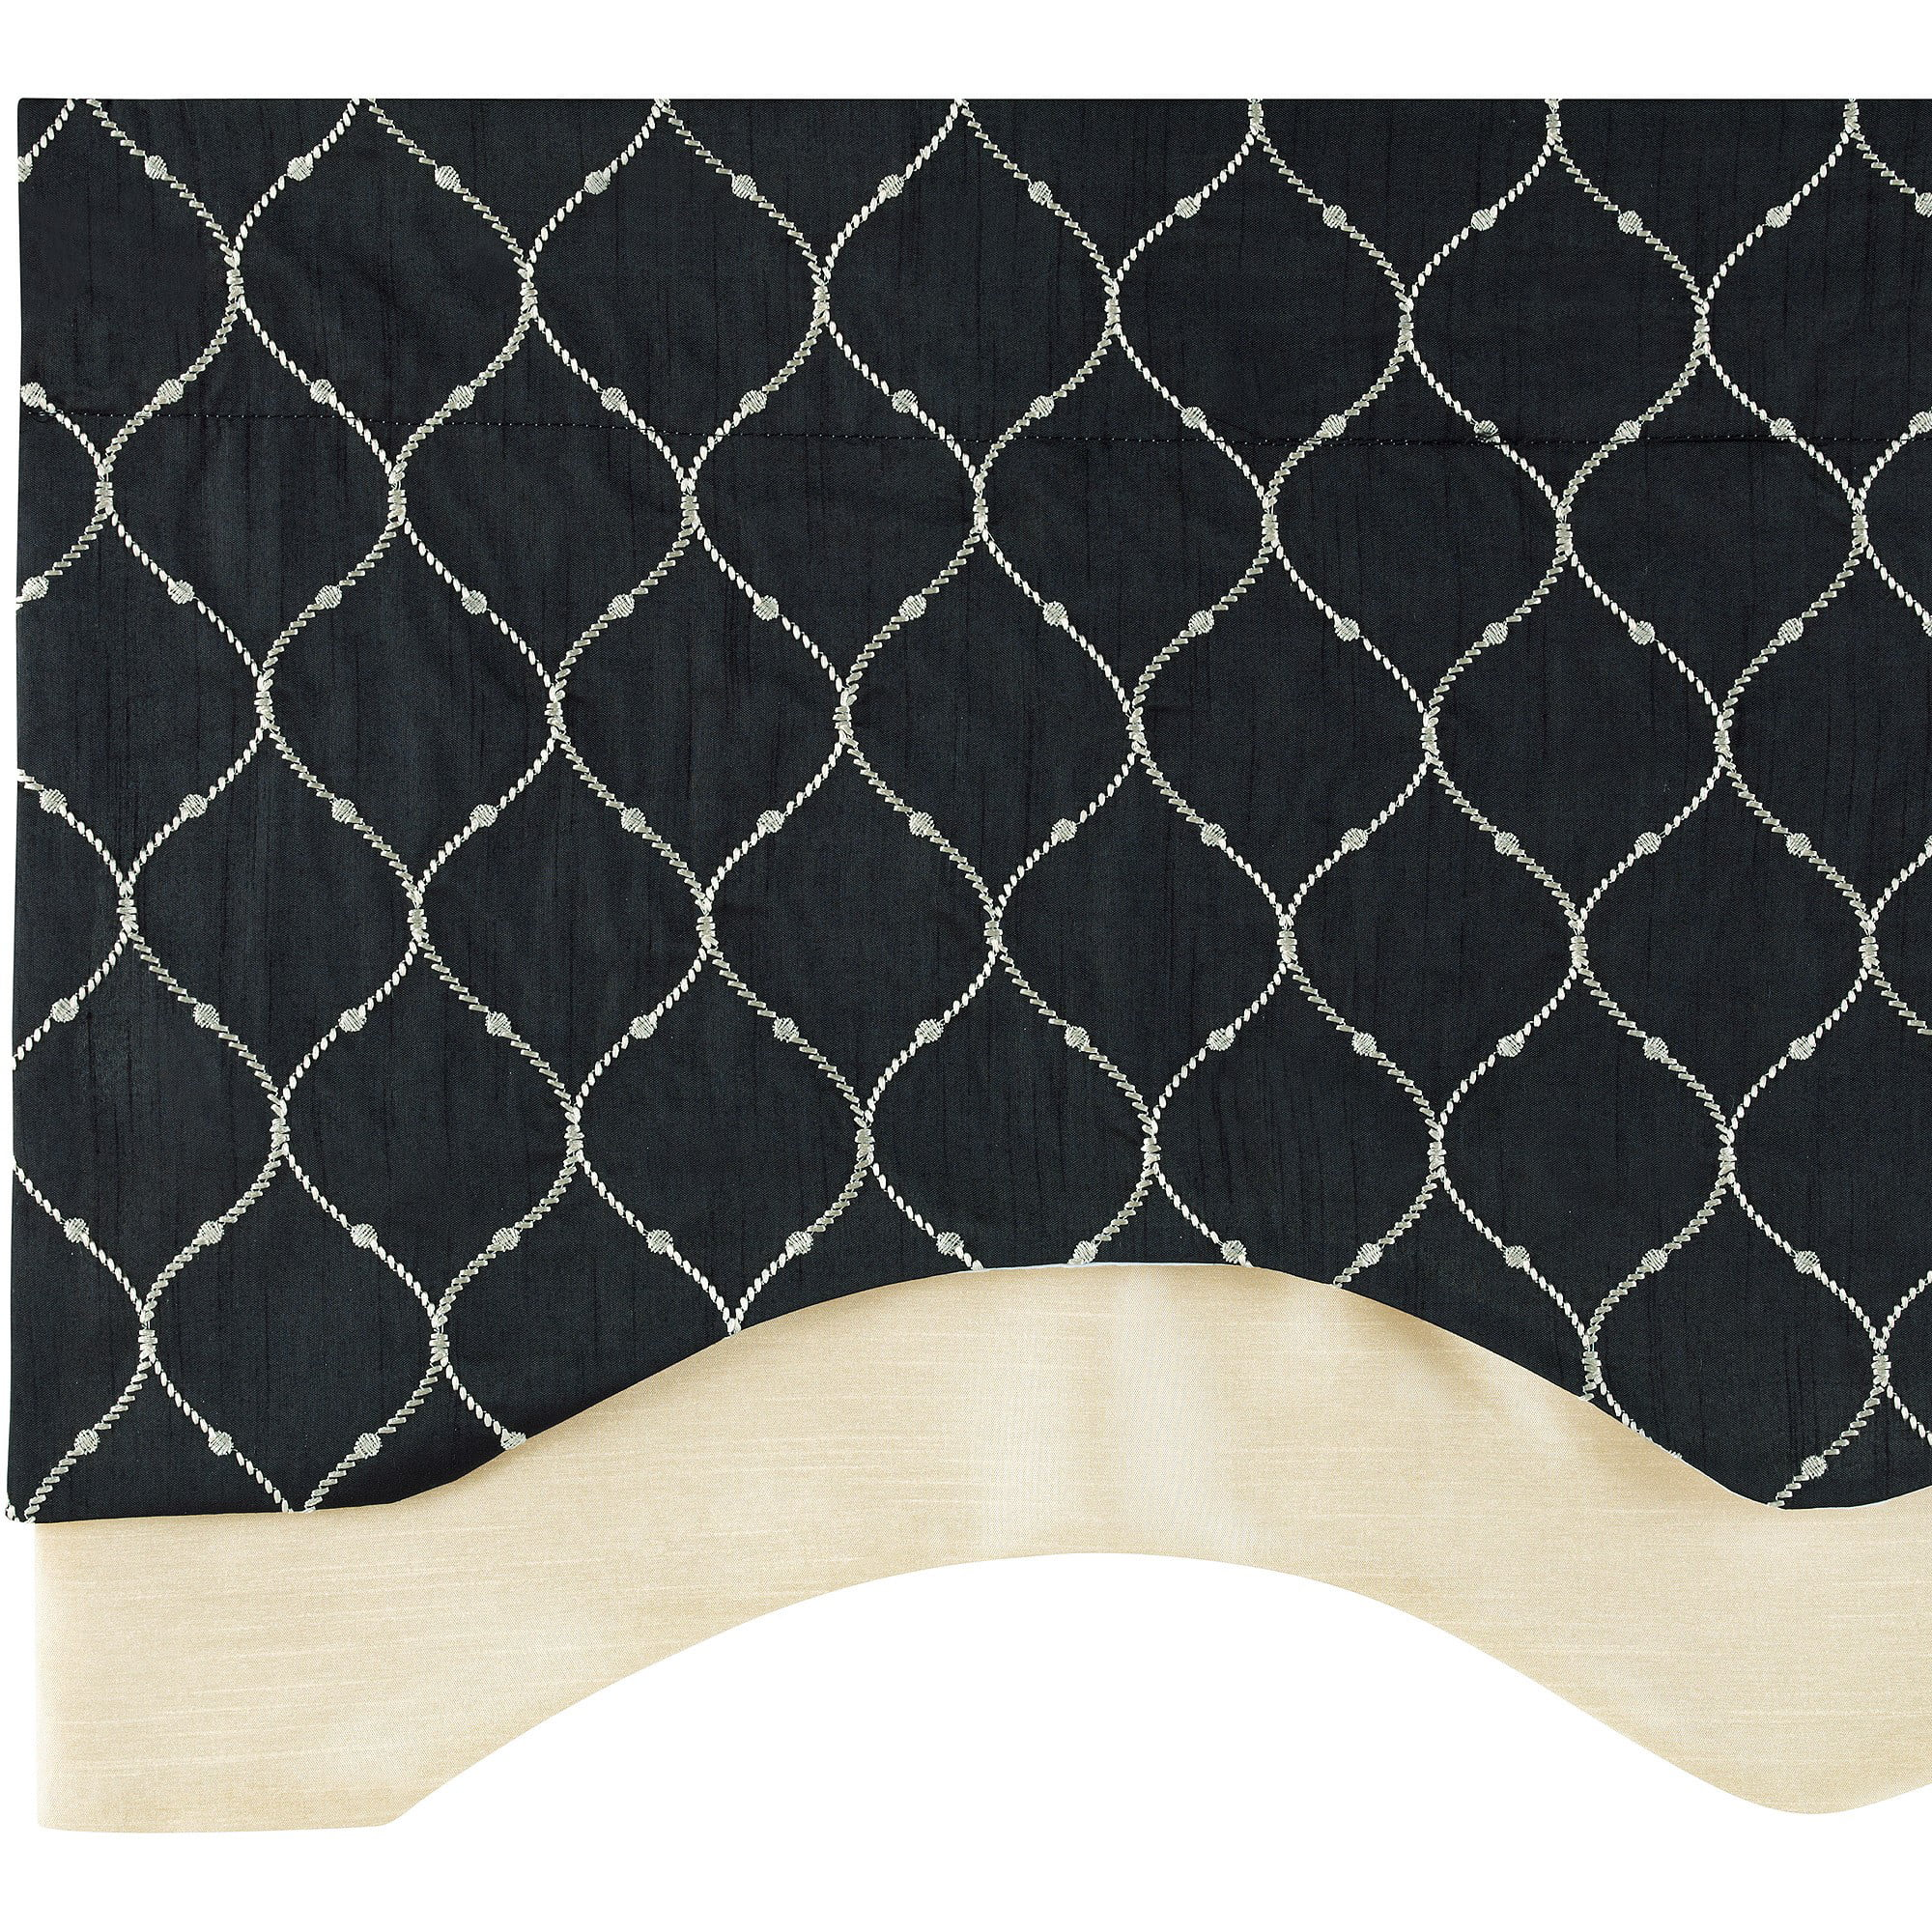 Bleecker Embroidered Layered Valance with Lining by Belle Maison USA, LTD.